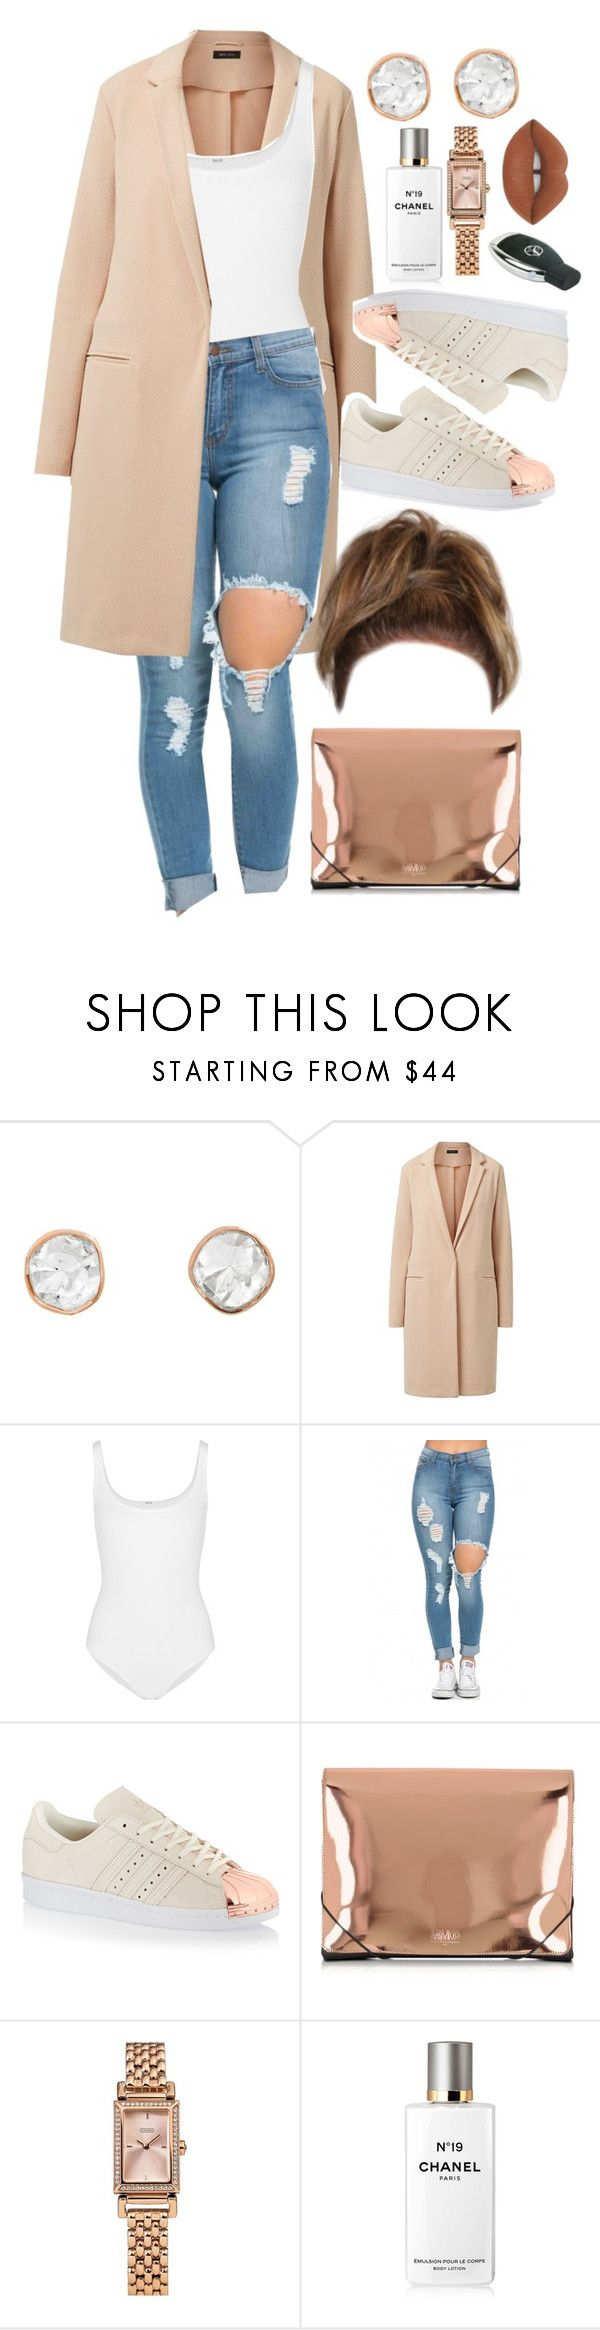 """26 January, 2016"" by jamilah-rochon ❤ liked on Polyvore featuring Sally Agarwal, Wolford, adidas Originals, MM6 Maison Margiela, Coach, Chanel, Lime Crime, women's clothing, women and female"